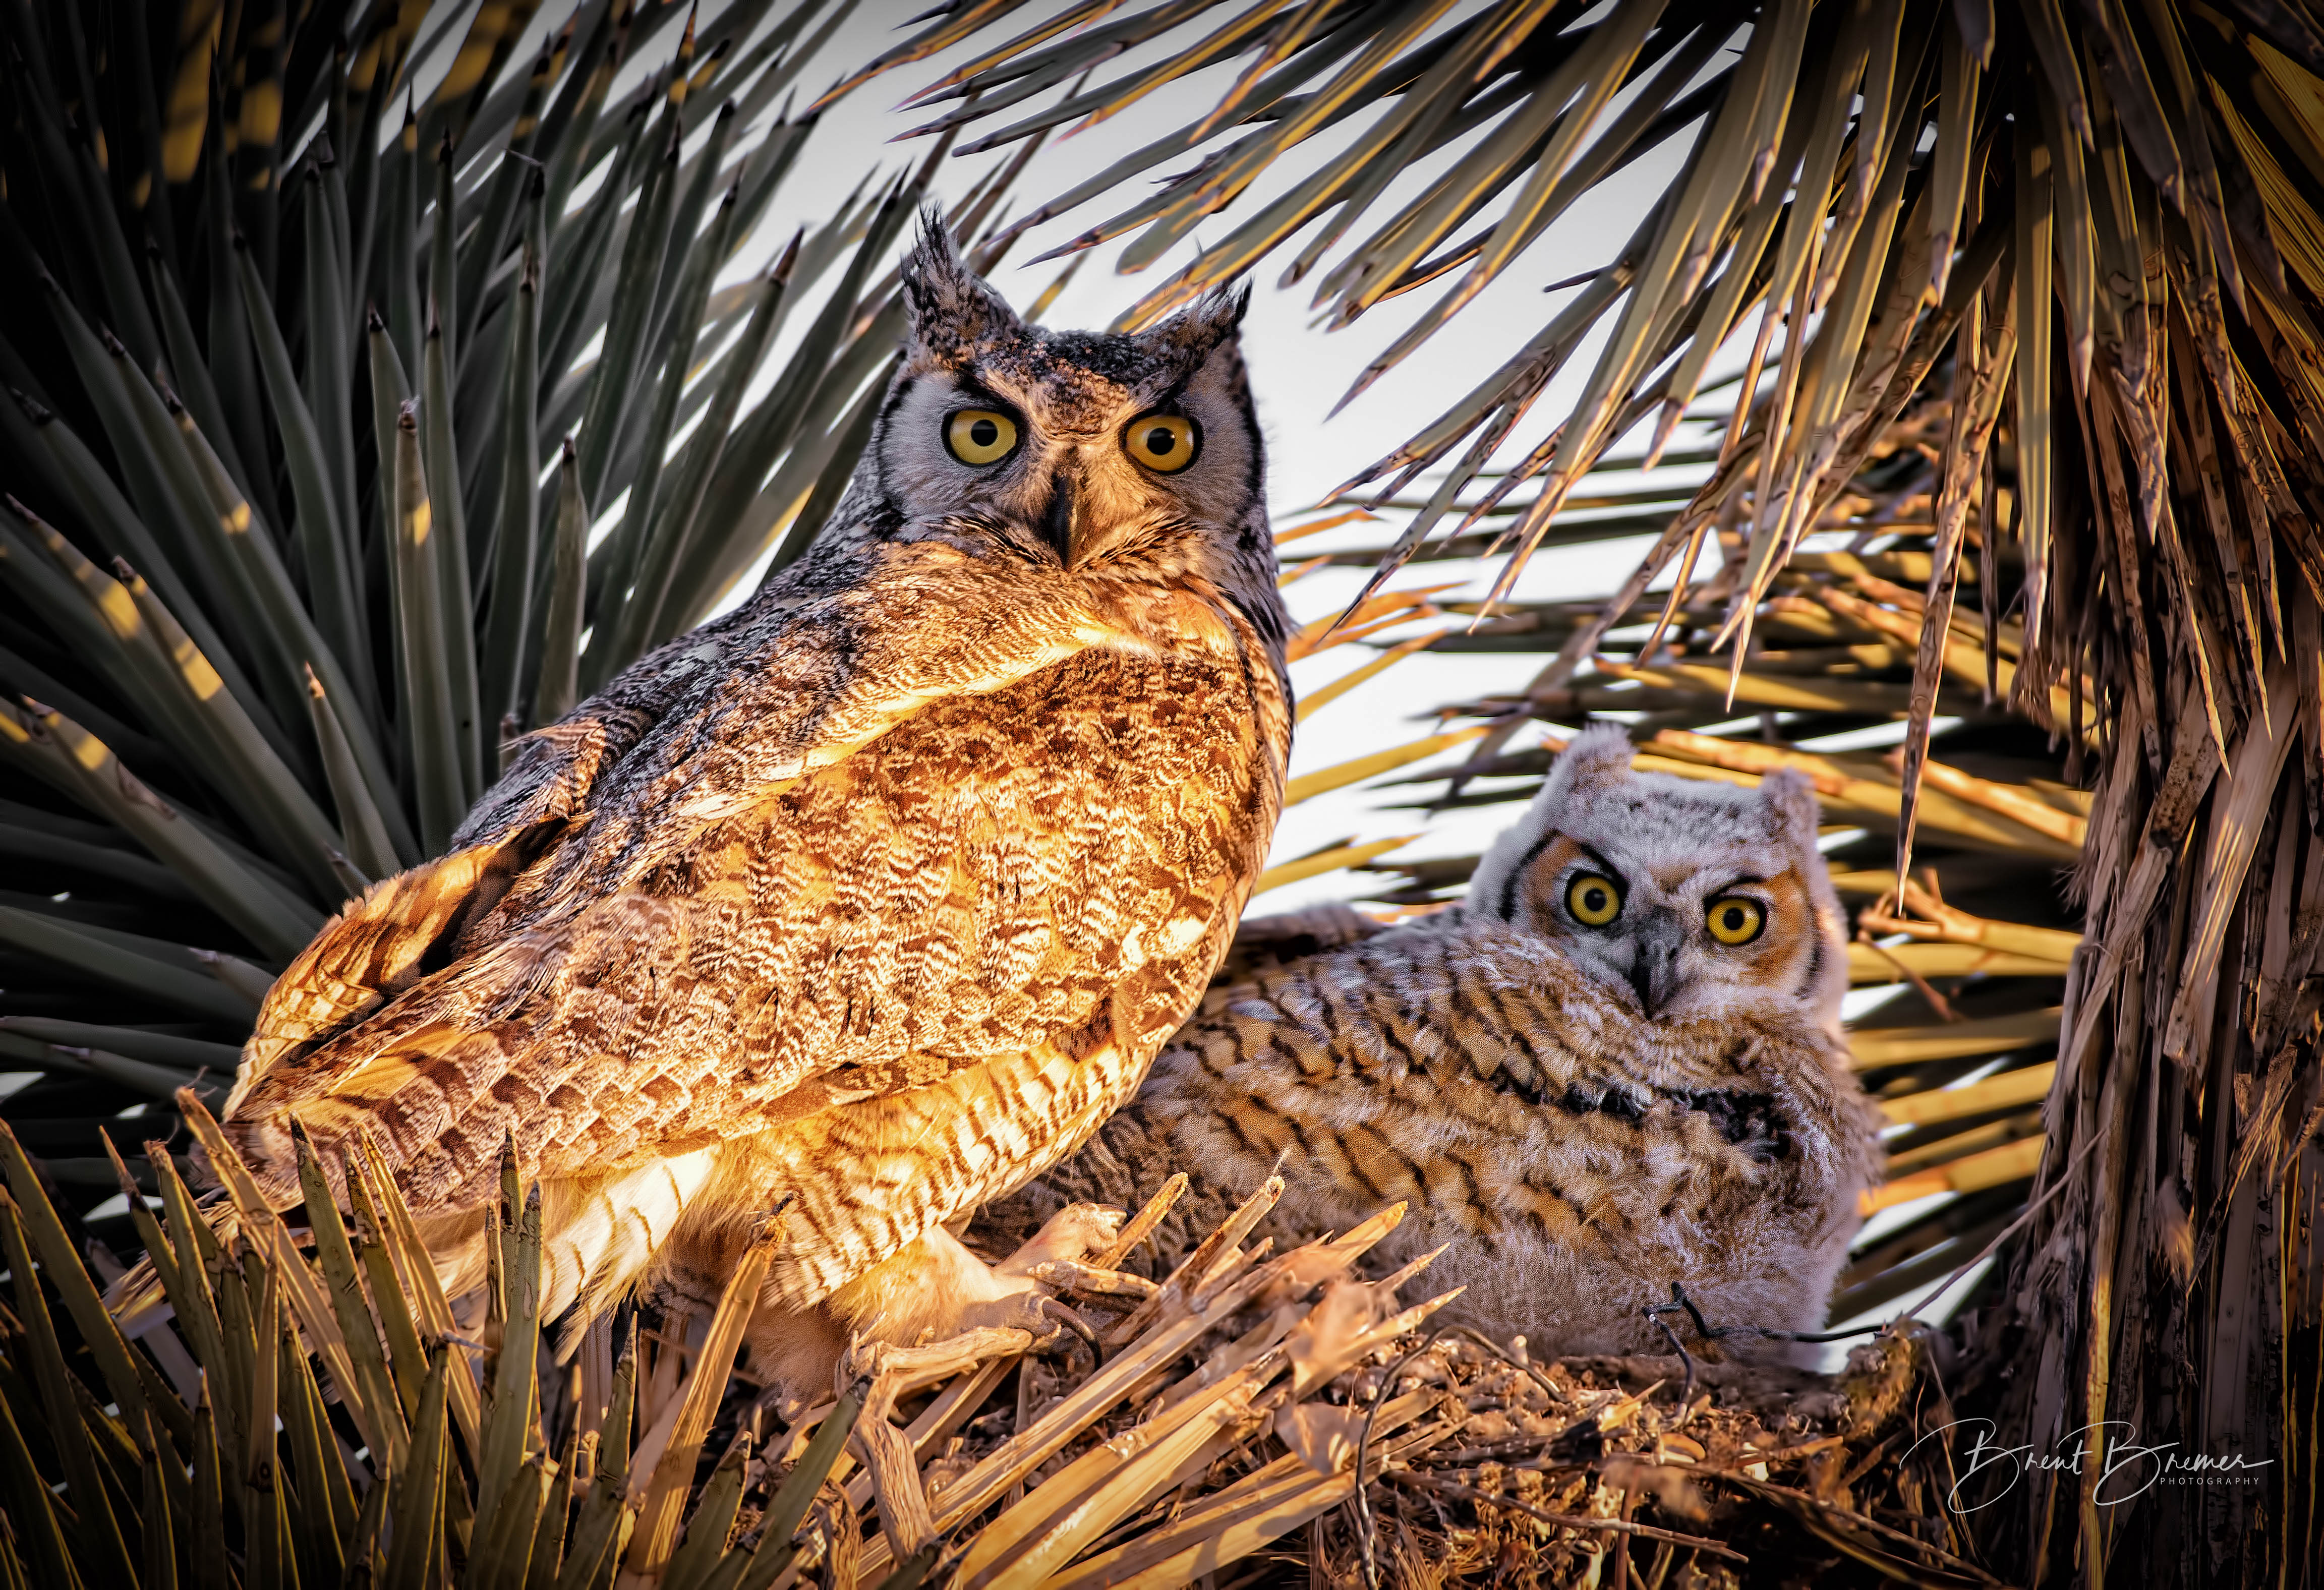 Owl and Owlet in Joshua Tree